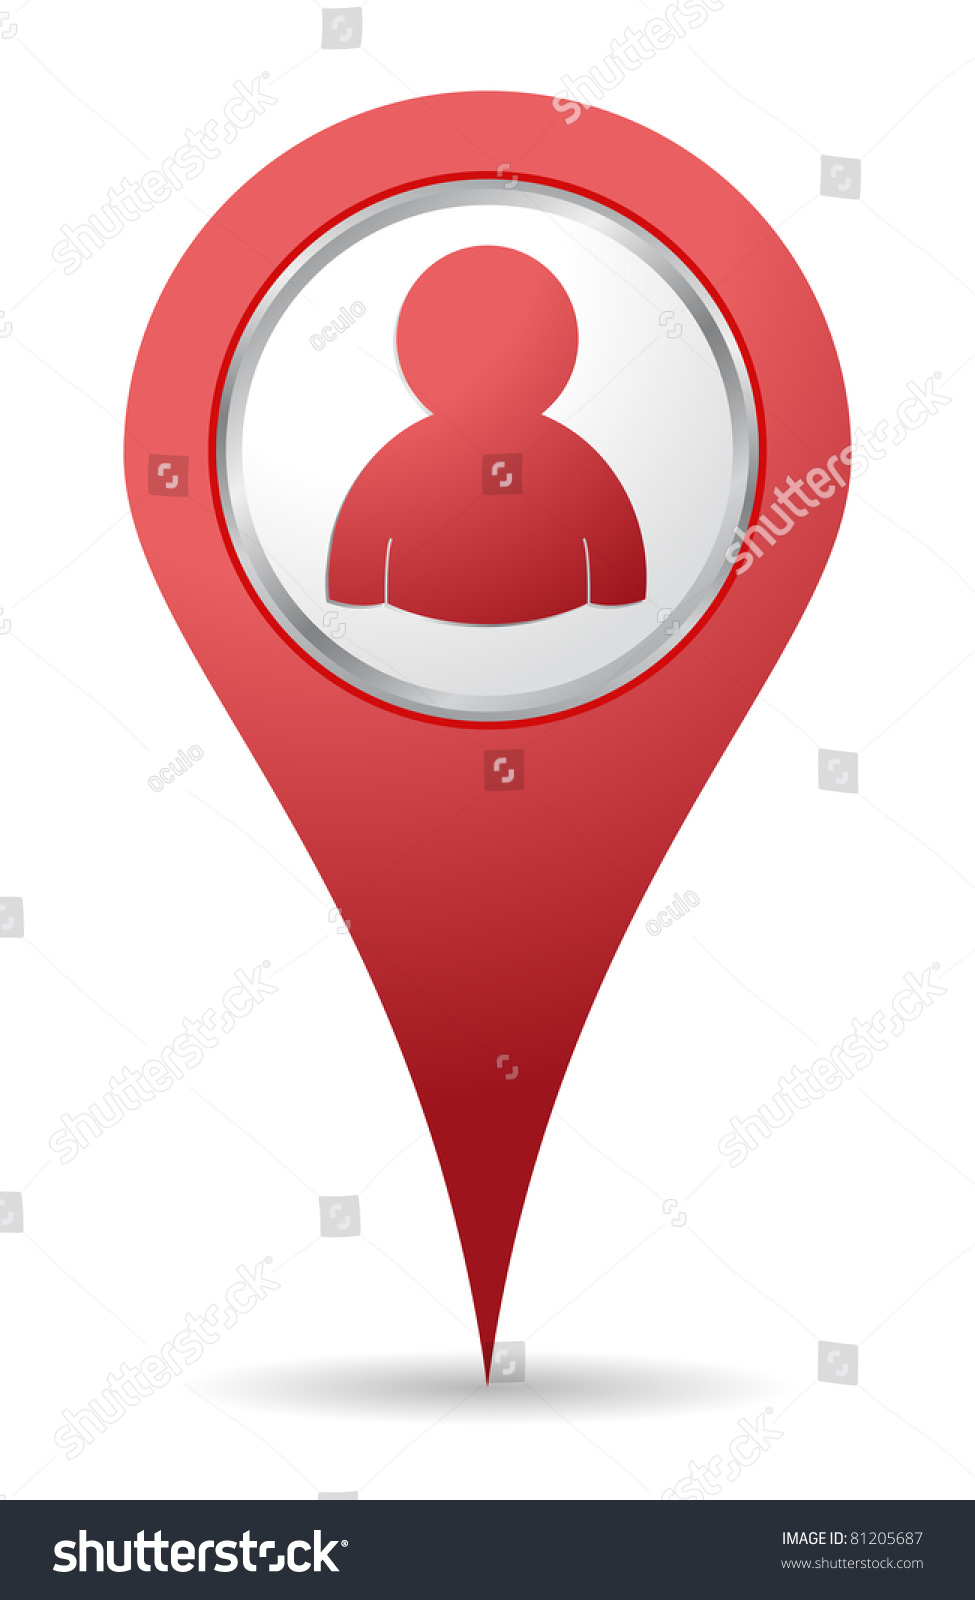 Location People Icon Red Color Stock Vector 81205687 ...